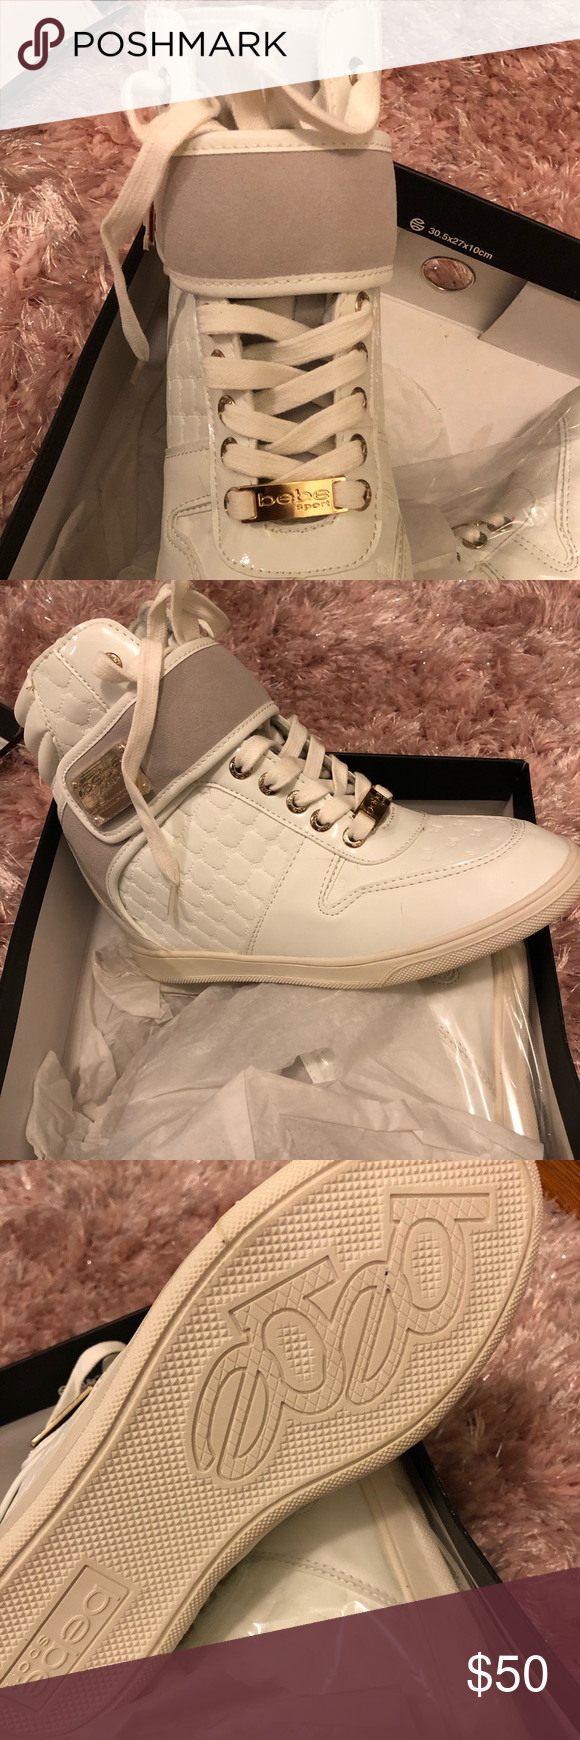 6808d5599ab Bebe Colby wedge sneakers Keep in mind that depending on the lighting these  sneaker soles will